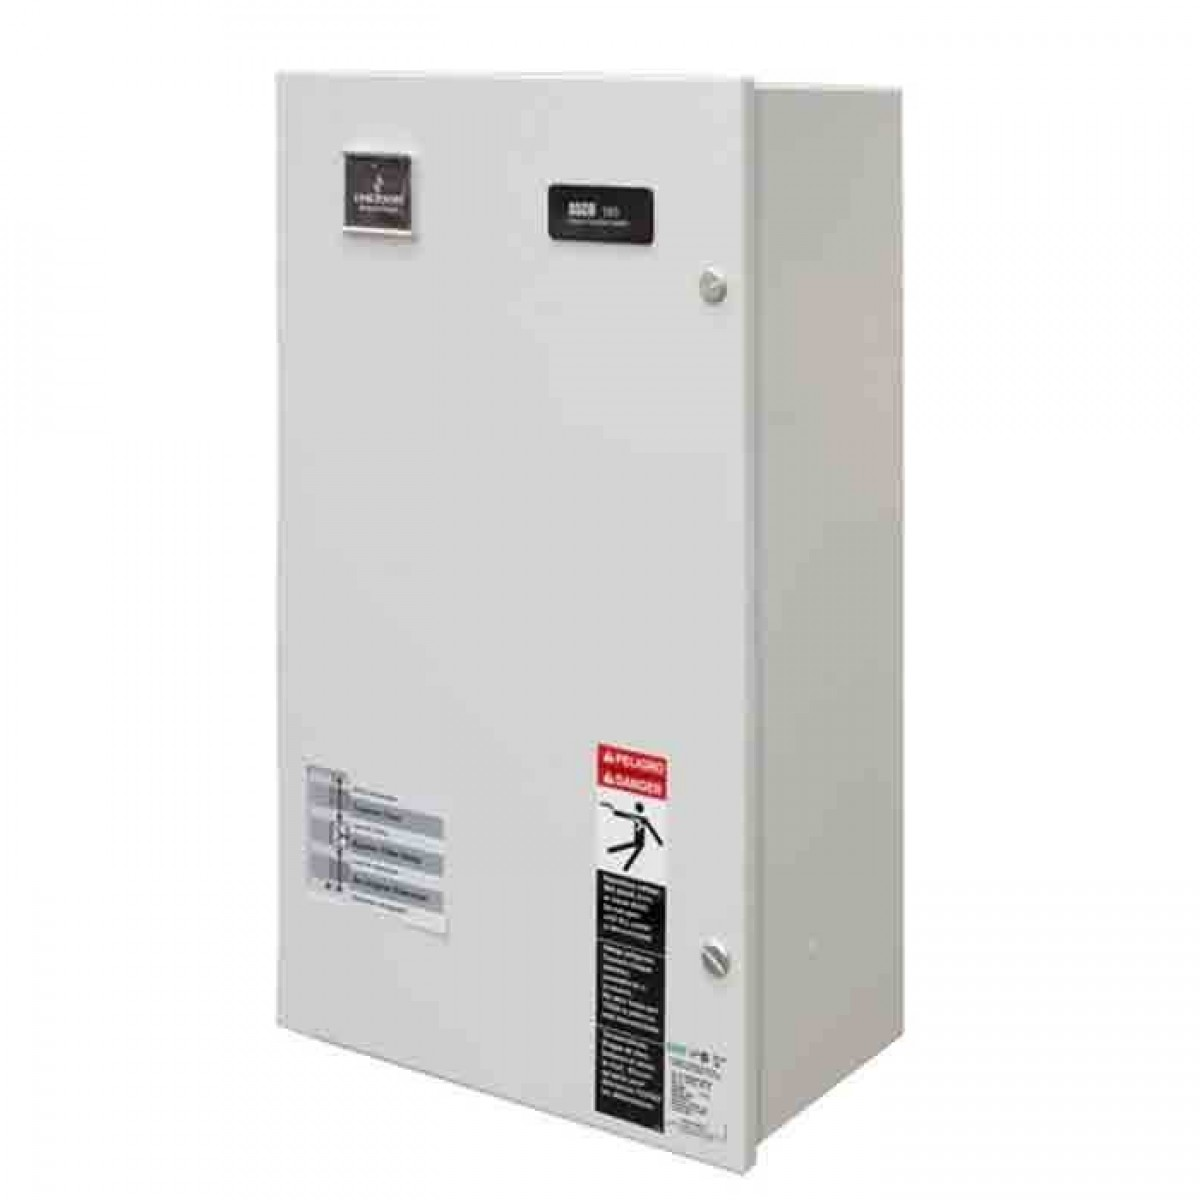 winco asco 185 series 200 amp automatic transfer switch. Black Bedroom Furniture Sets. Home Design Ideas